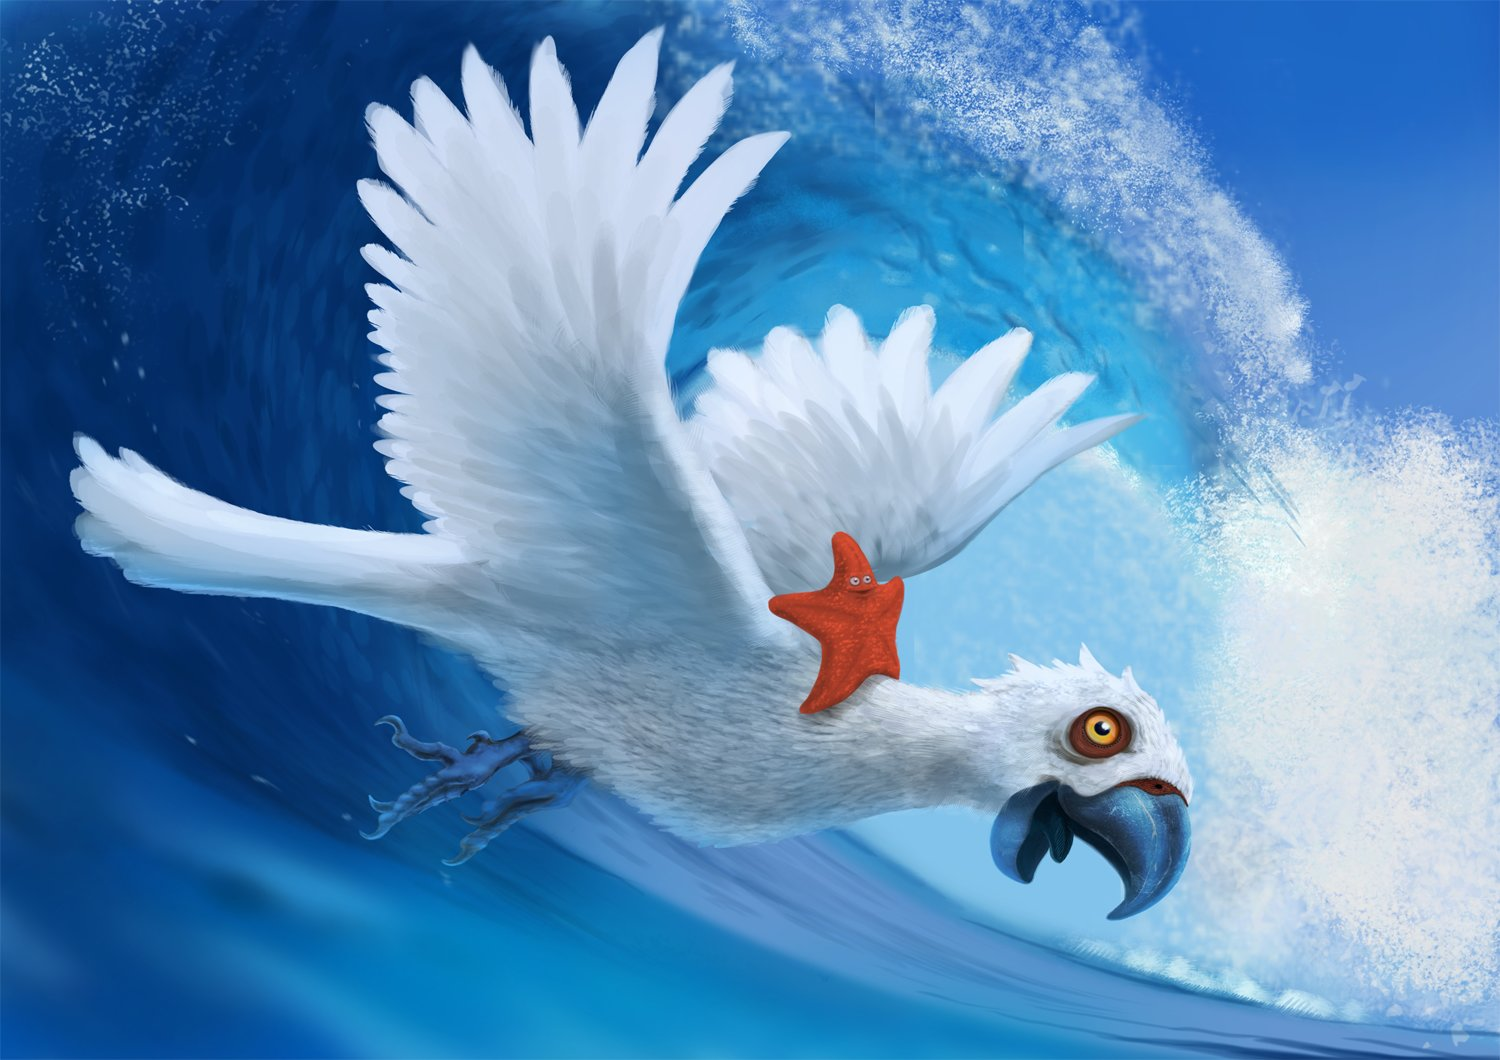 Parrot Surfin' with sea star